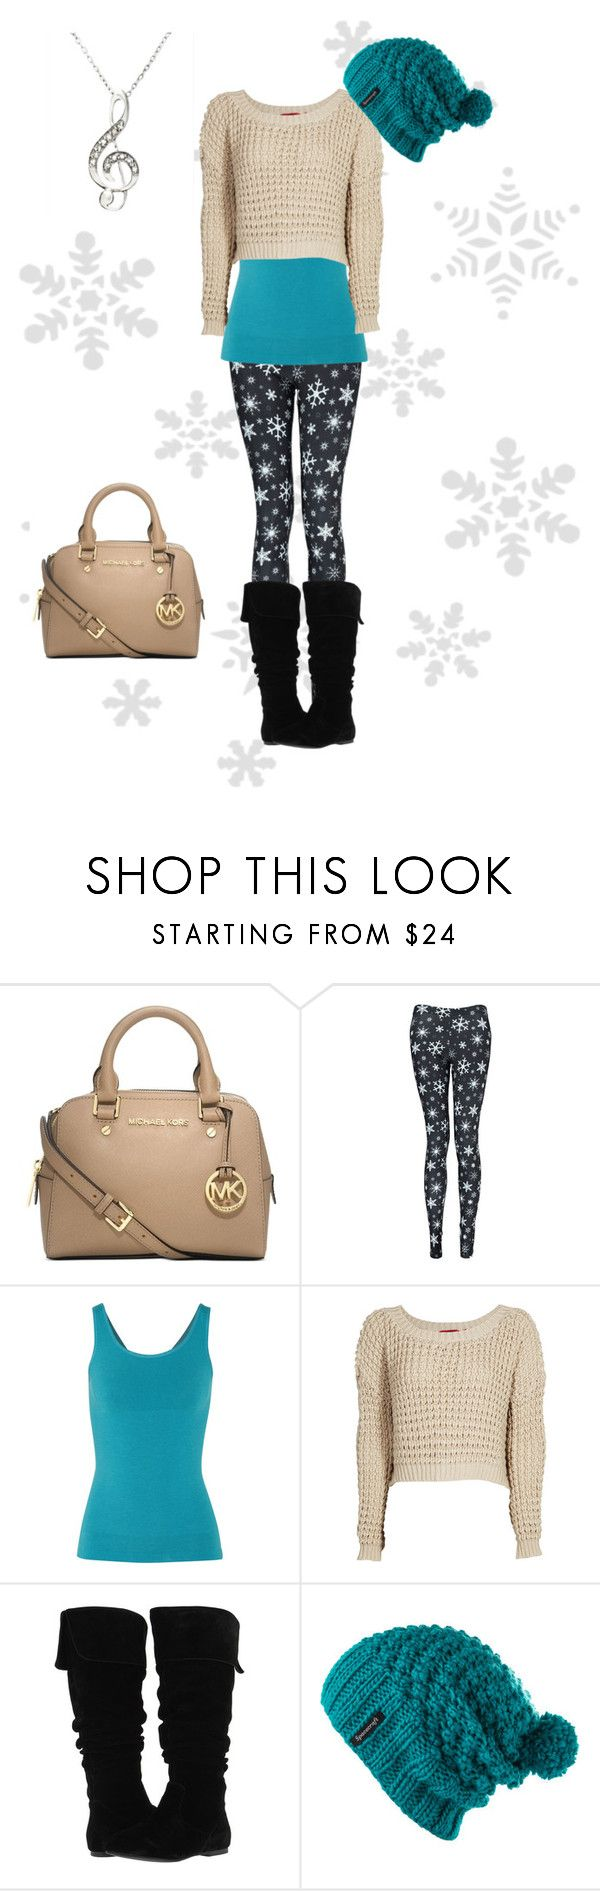 """""""Winter wonderland"""" by fiat-justitia ❤ liked on Polyvore featuring Michael Kors, Boohoo, Yummie by Heather Thomson, Gabriella Rocha and Spacecraft"""